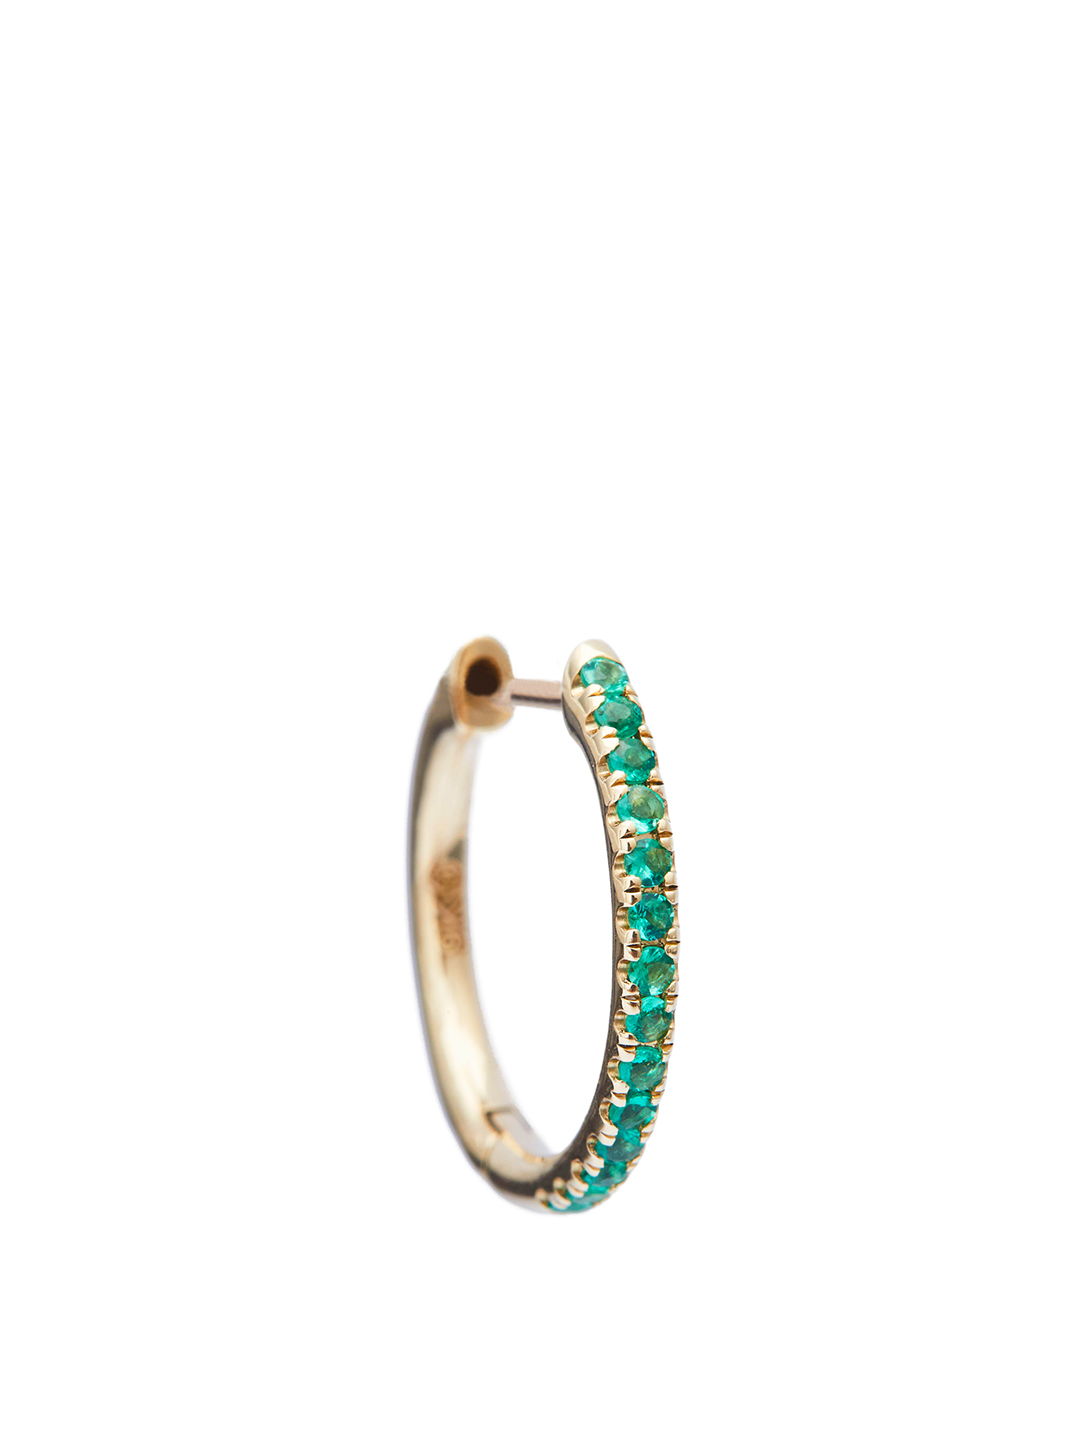 YI COLLECTION 14K Gold Hoop Earring With Emeralds Women's Metallic